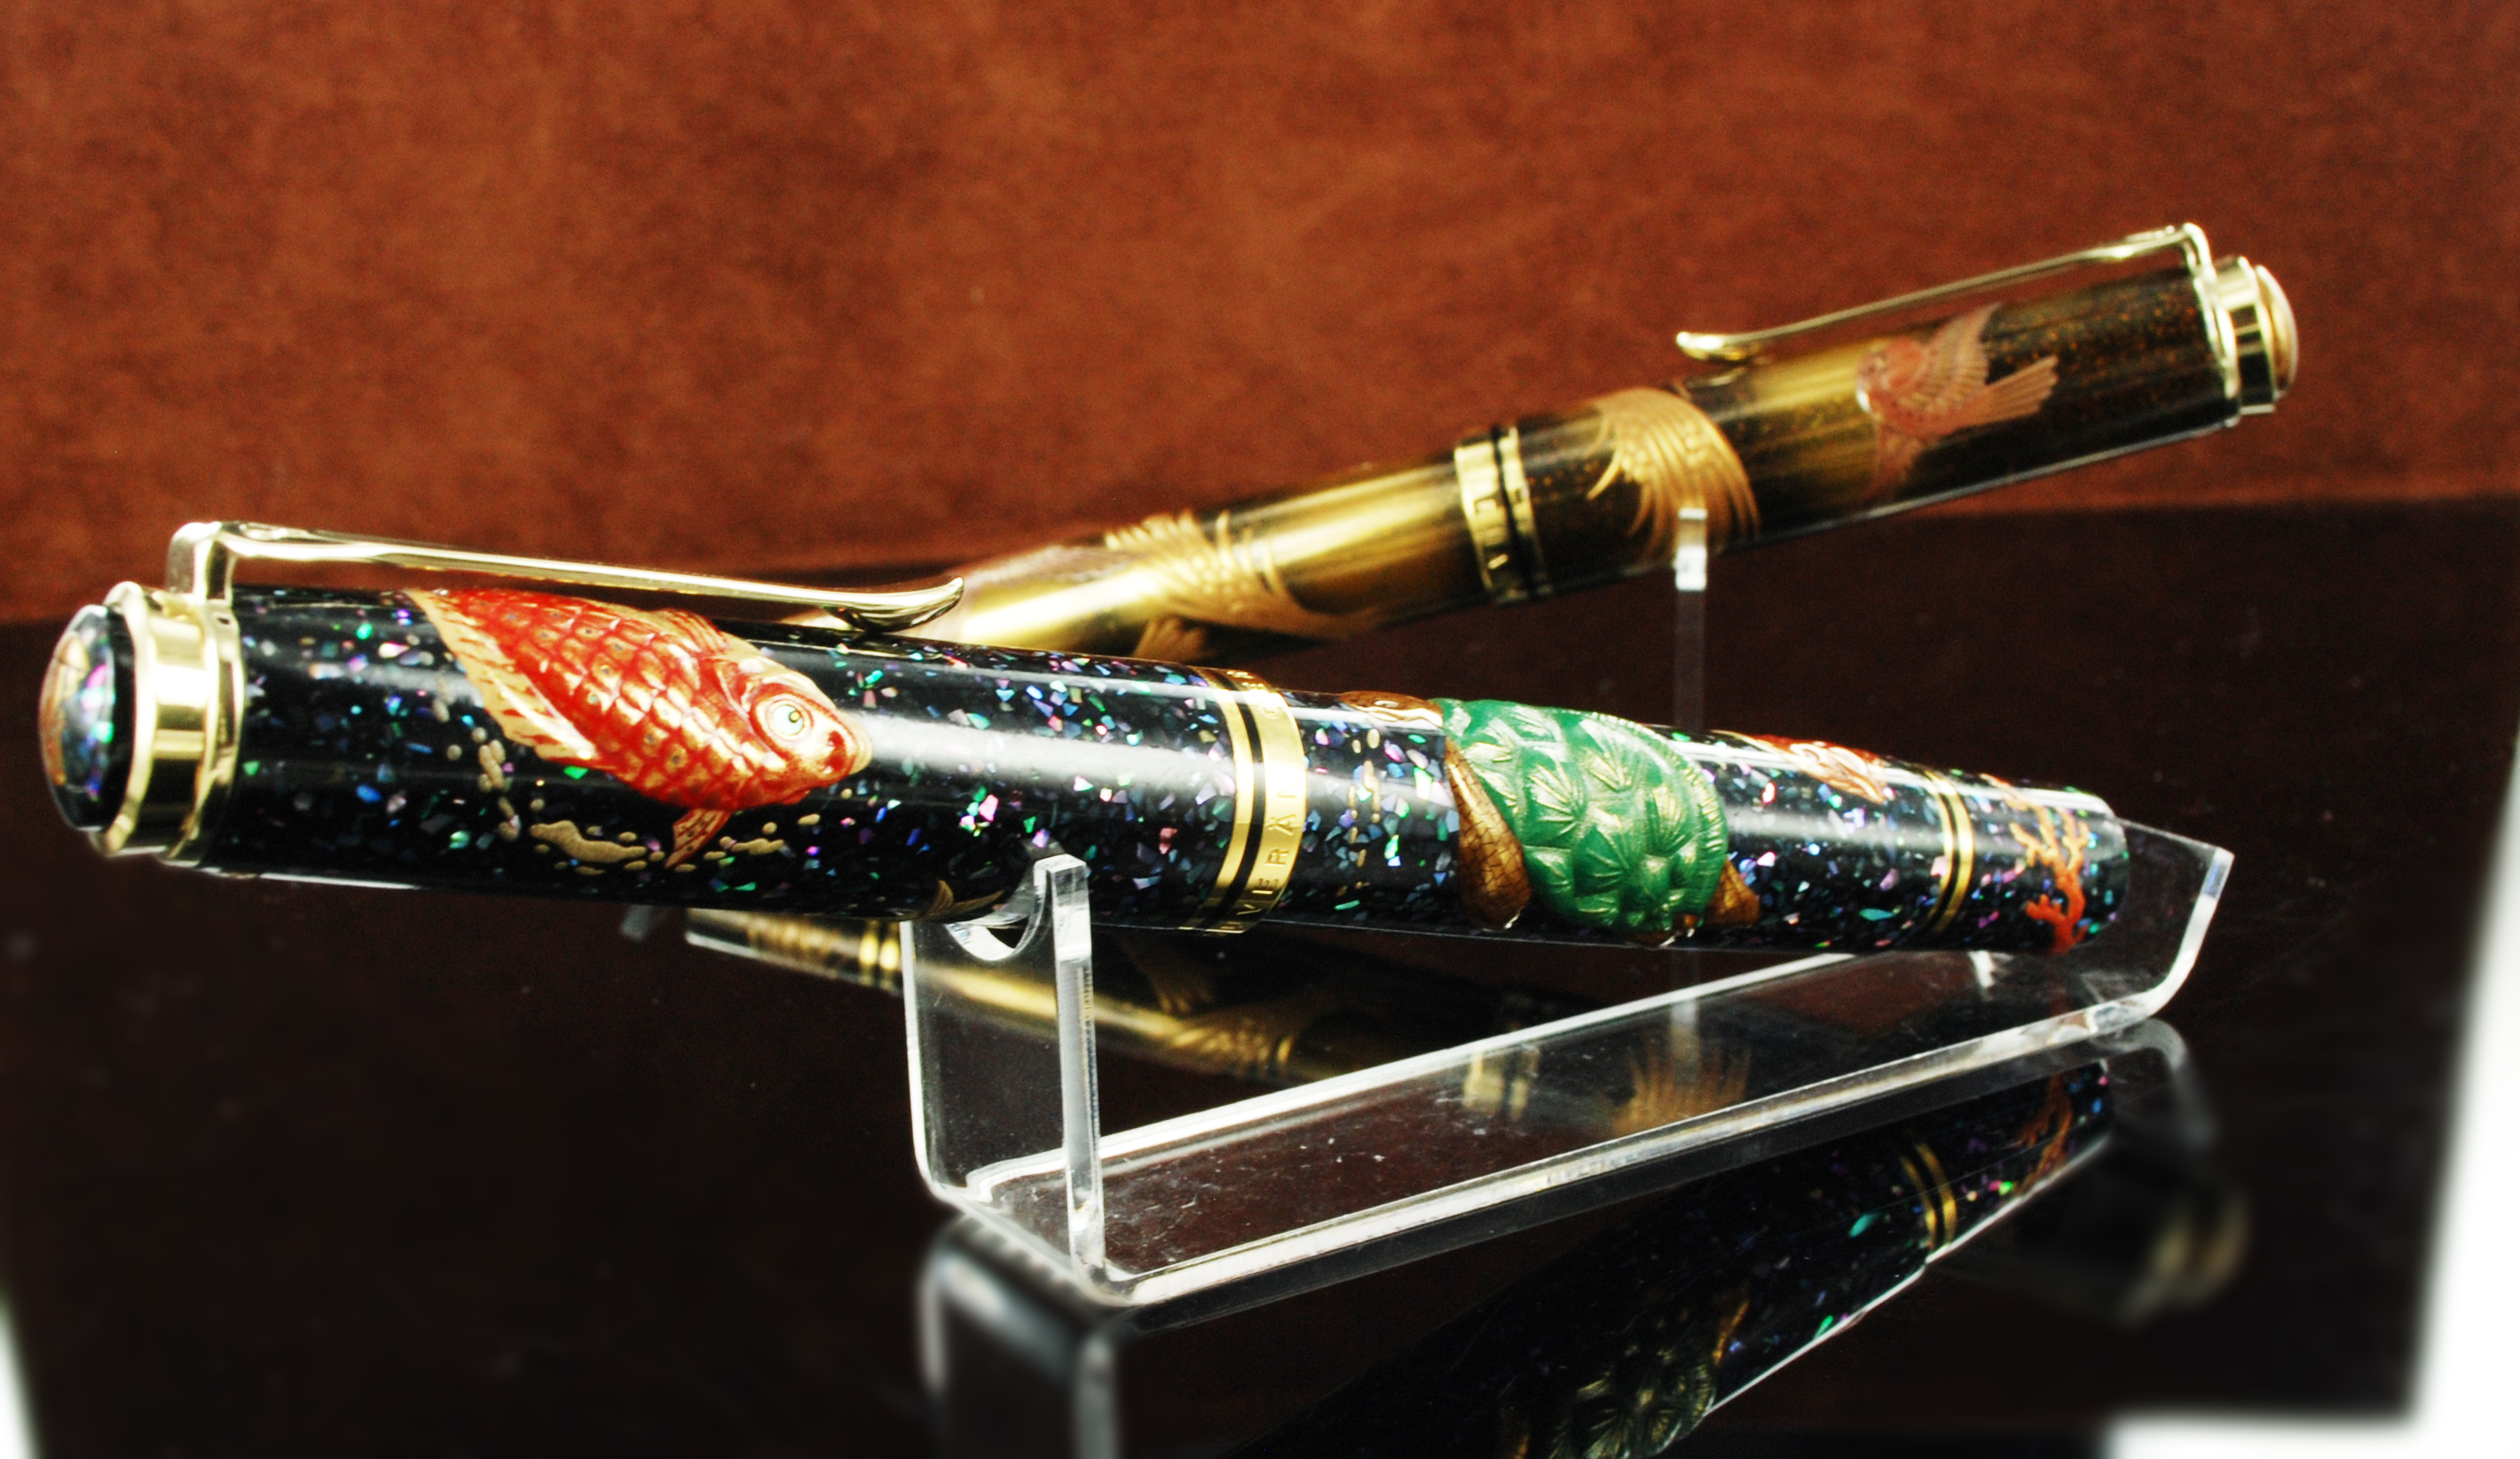 Pelikan Maki-e World